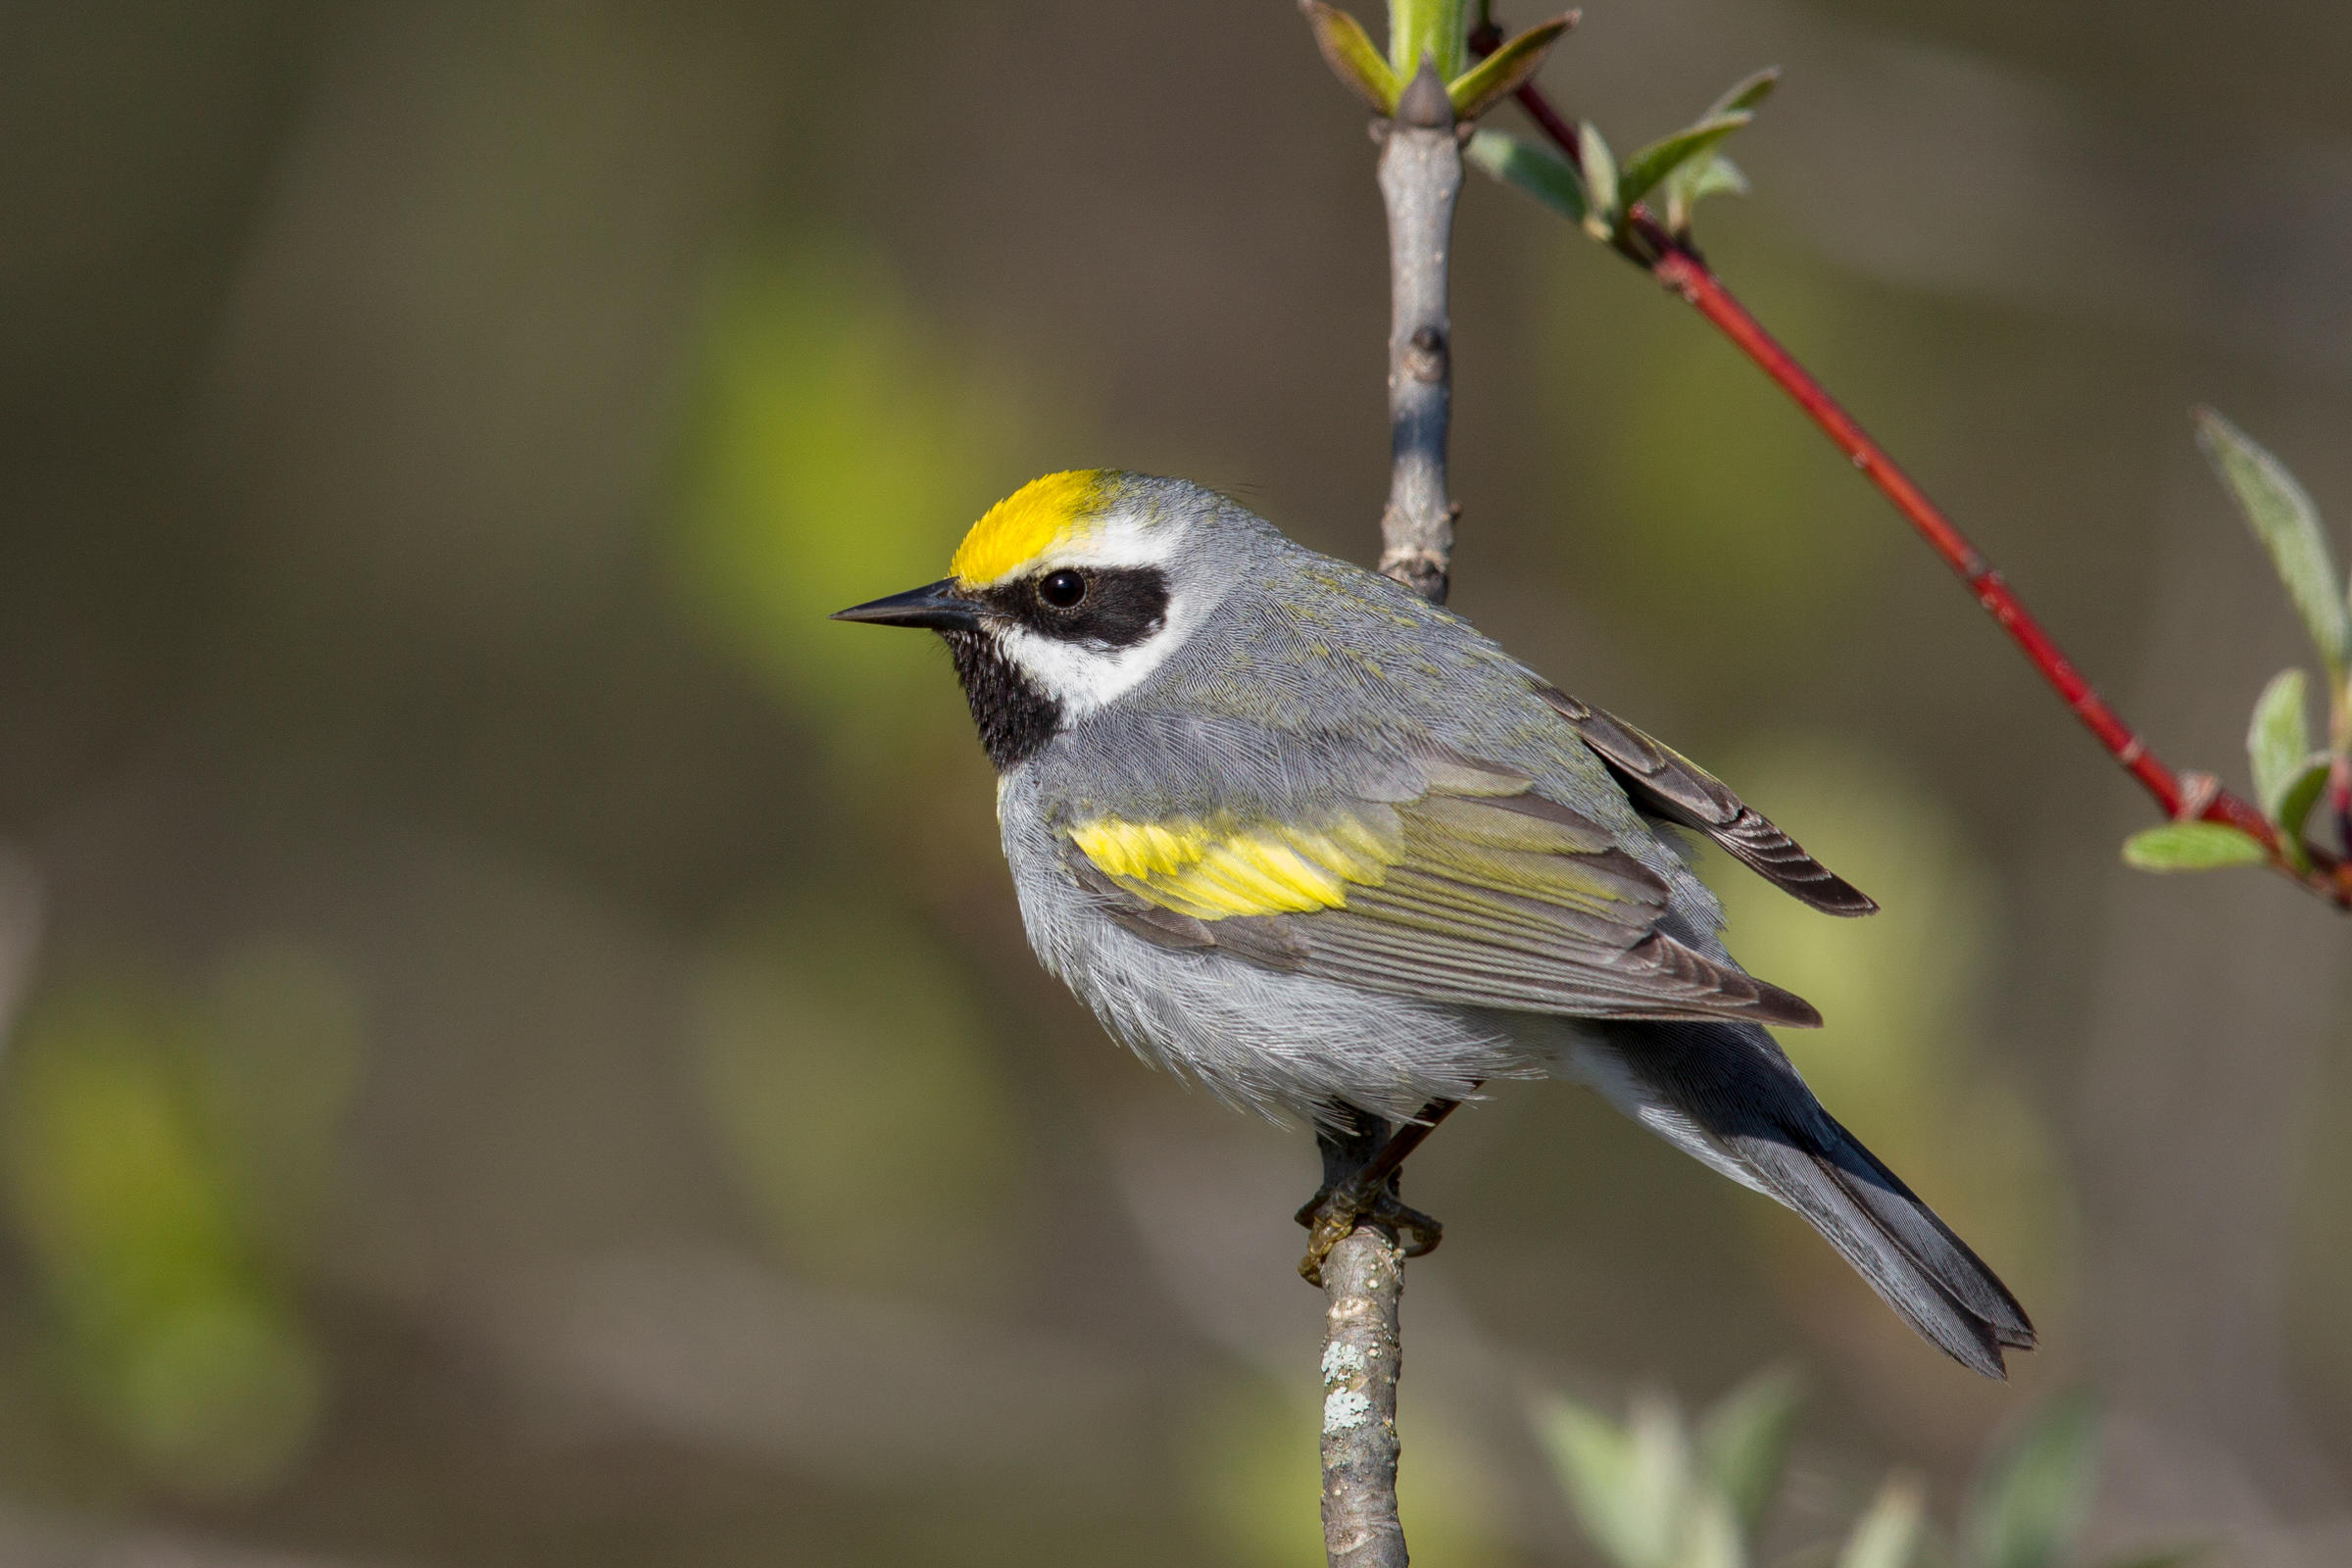 Golden-winged Warblers can be found in Green Bay, Wisconsin